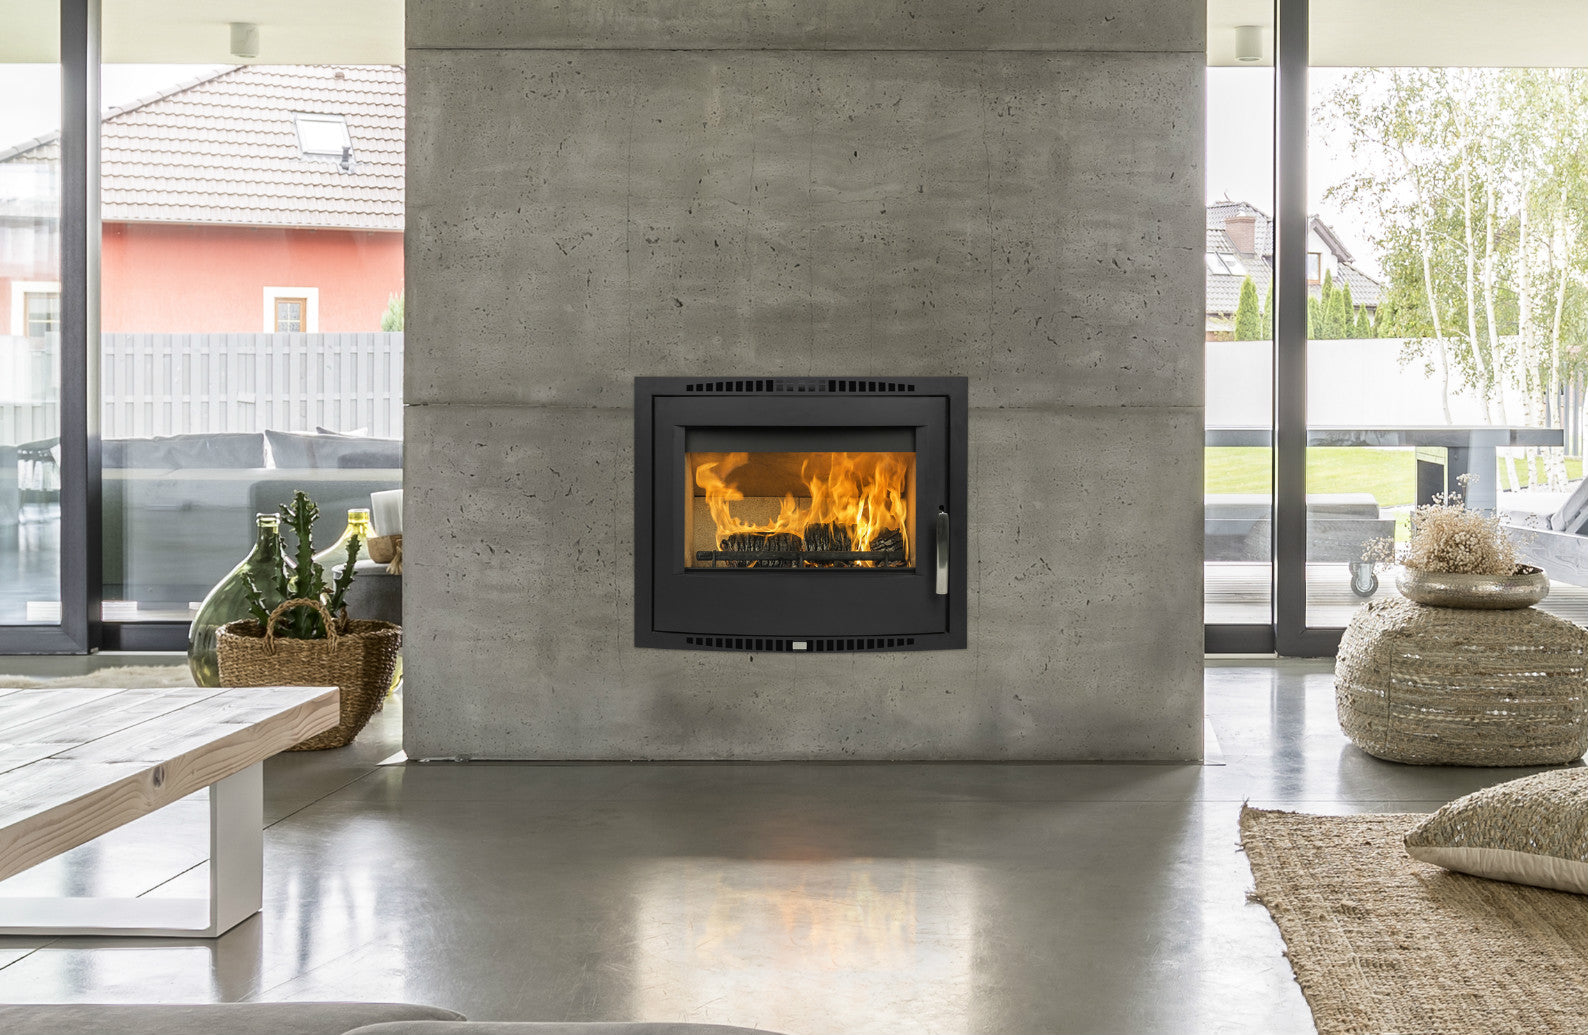 A Shannon Passive Eco stove shown in an airtight house boosts high efficiency, heat output 10 kW and contemporary look.